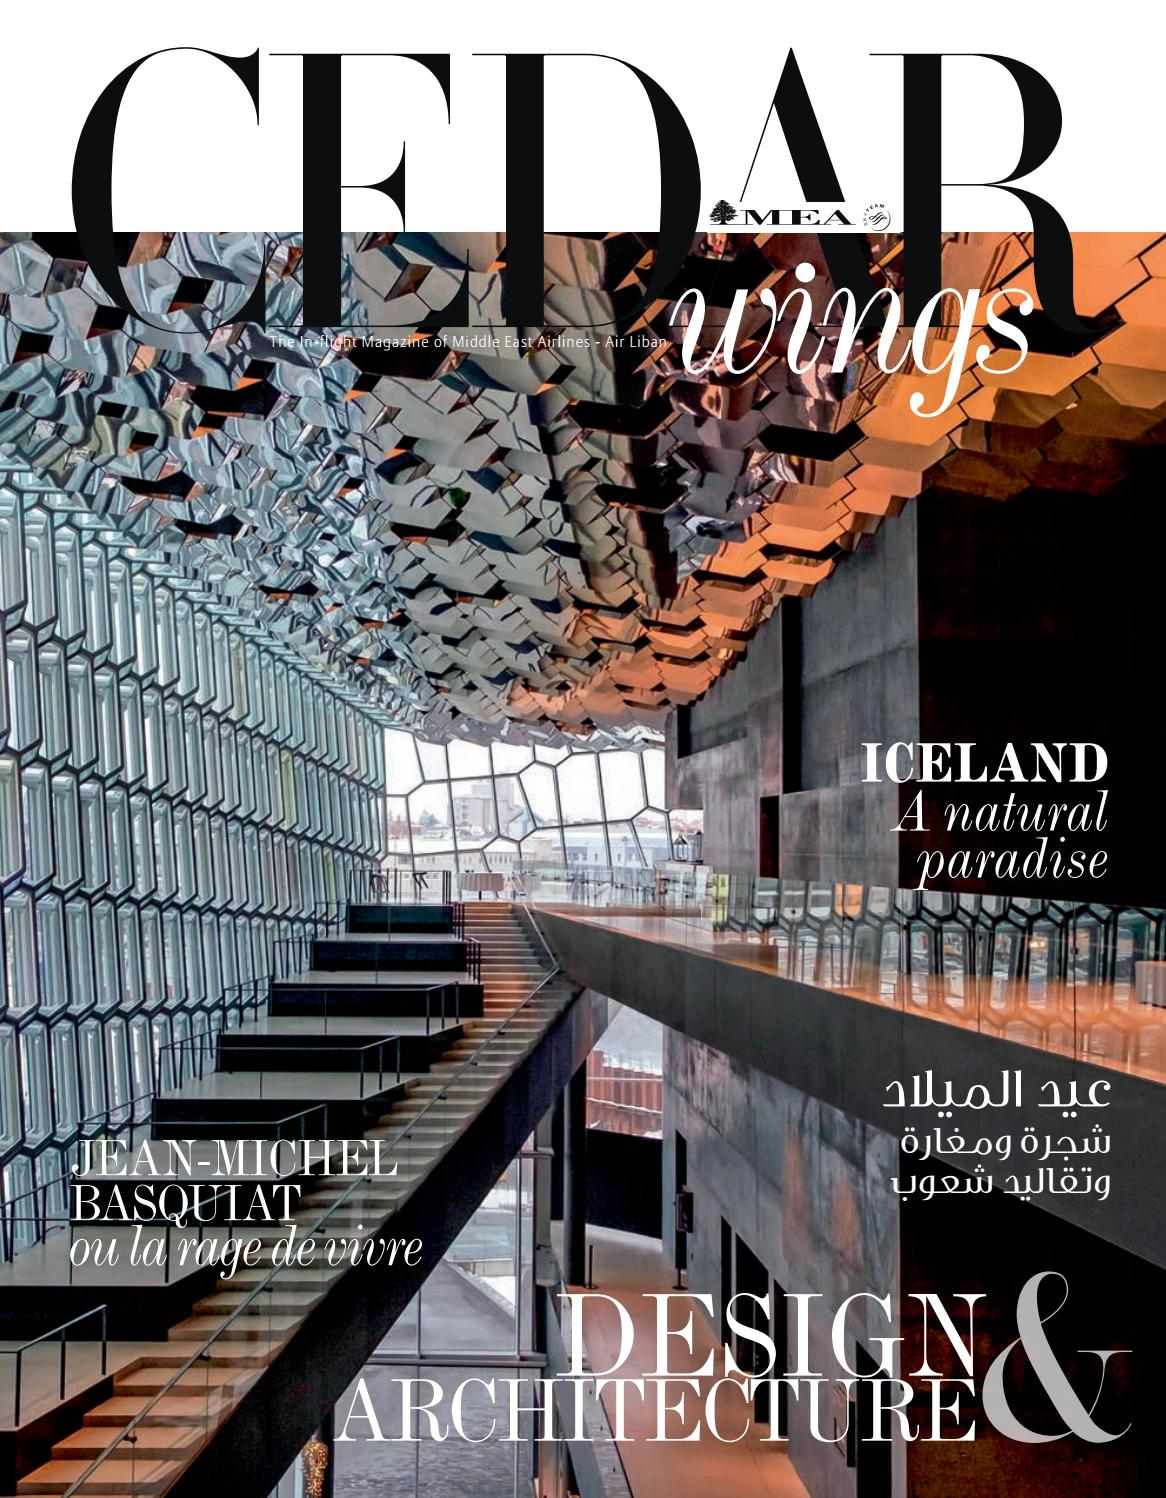 Galerie Terre D Ici cedar wings magazine. design & architecture. december 2018